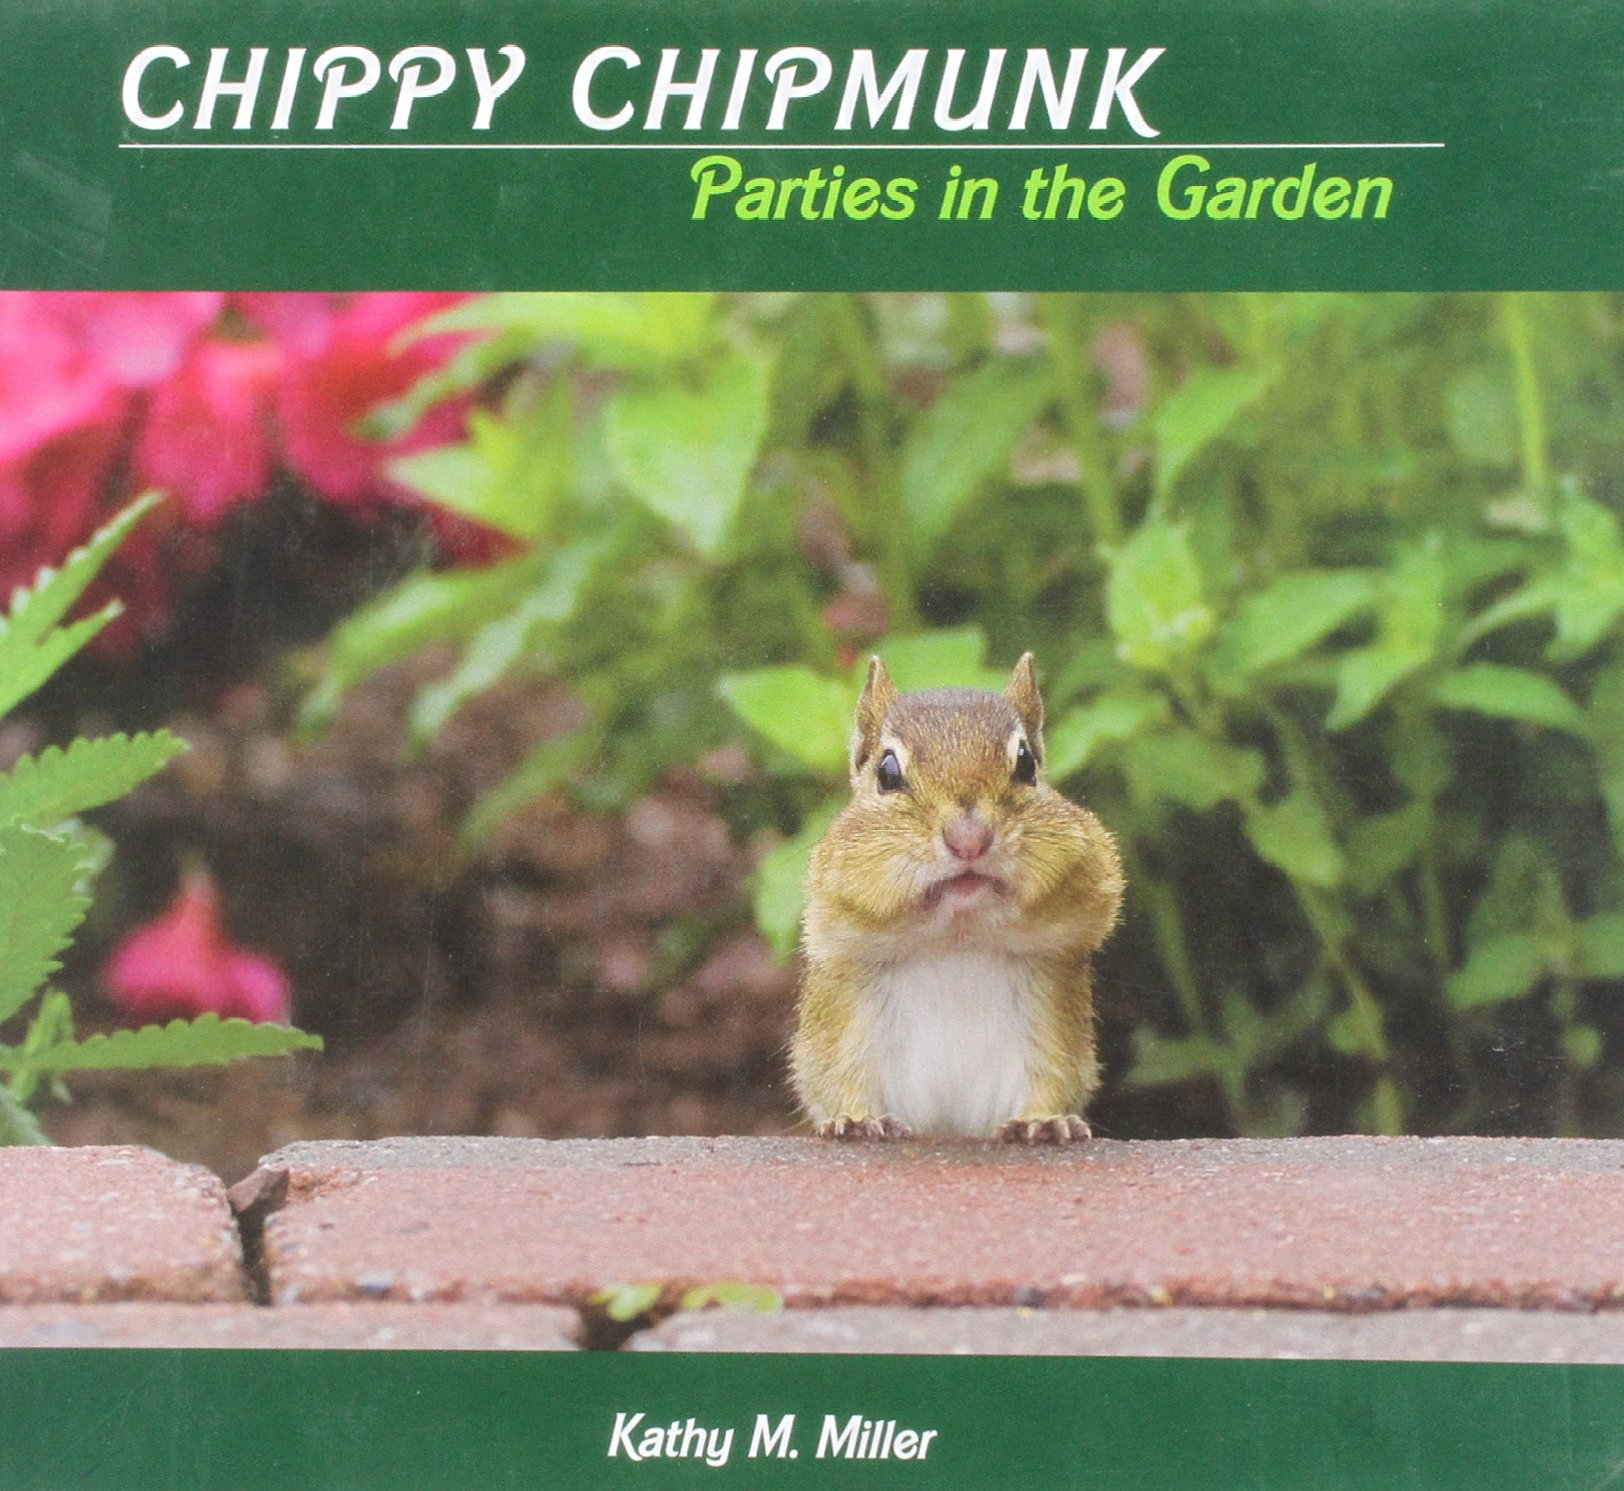 the garden party essay expulsion from the garden of eden museum of  com chippy chipmunk parties in the garden com chippy chipmunk parties in the garden 9780984089307 kathy